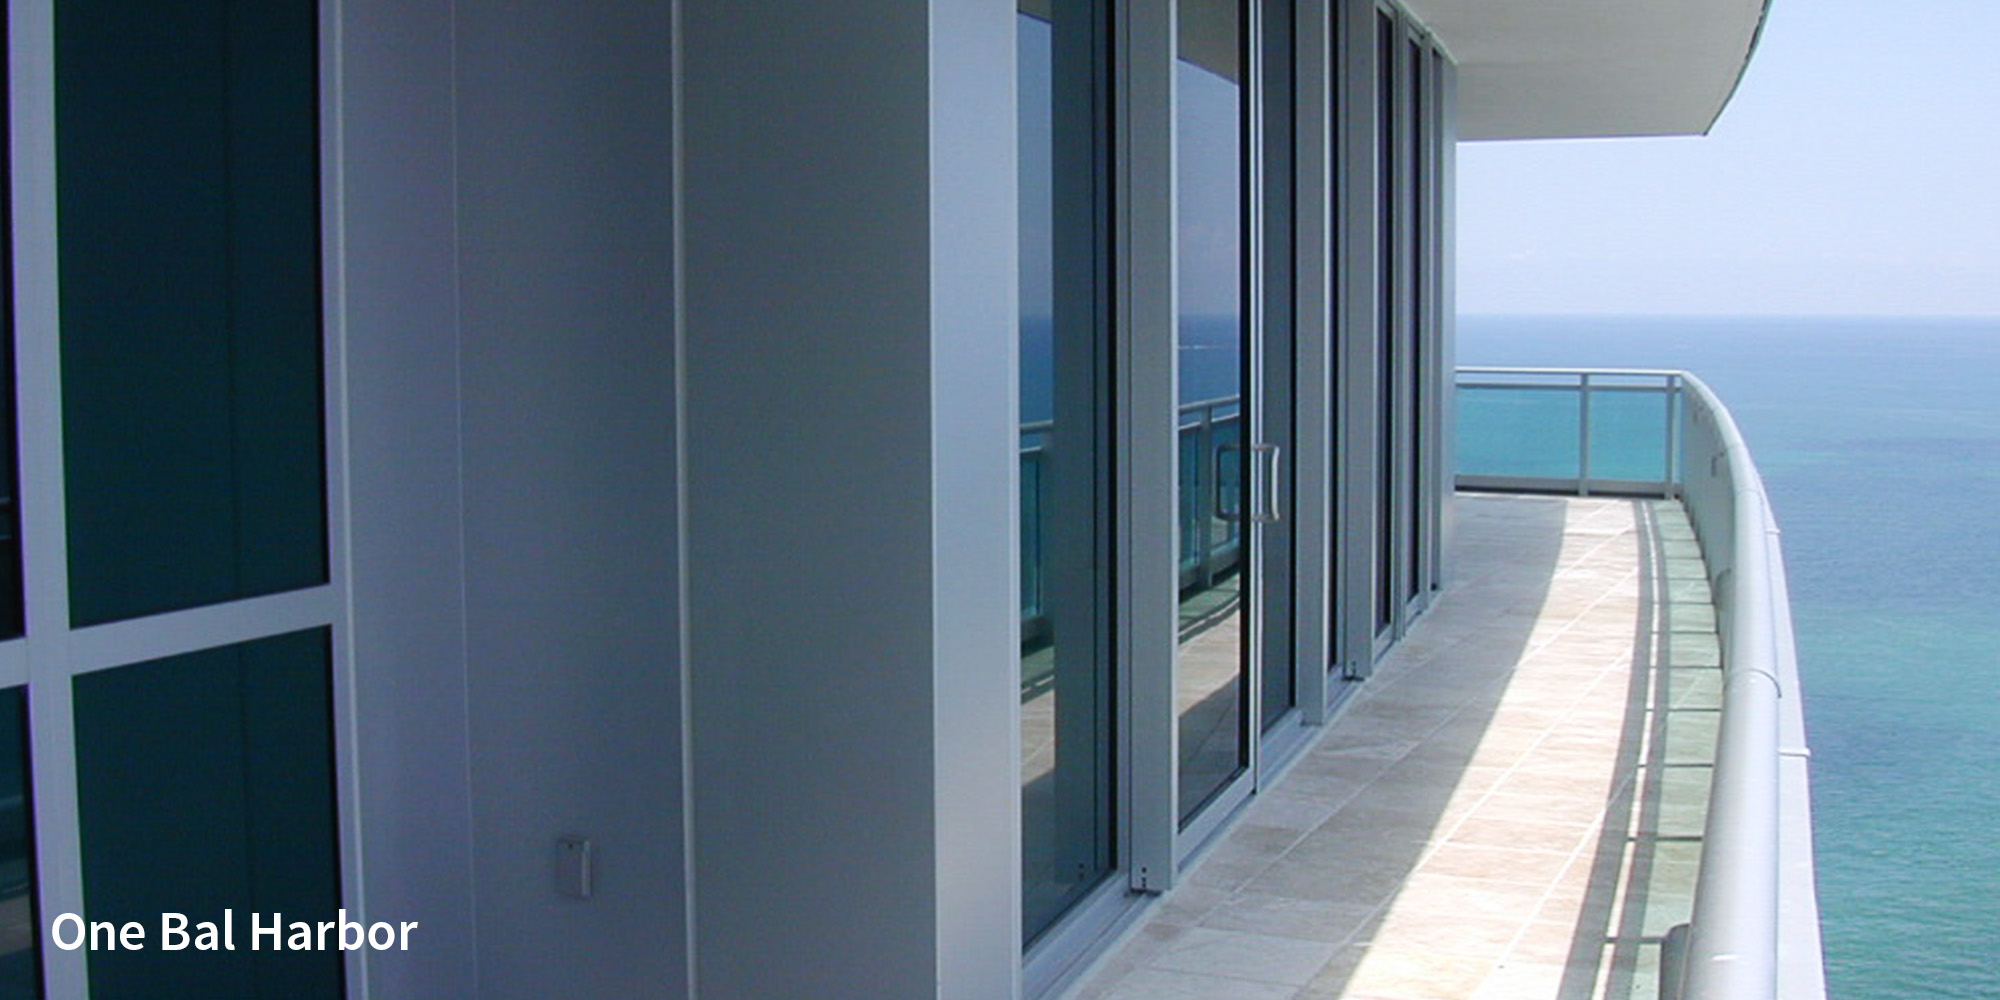 Sliding u0026 Terrace Doors & Commercial Balcony Doors | YKK AP Fenestration Systems